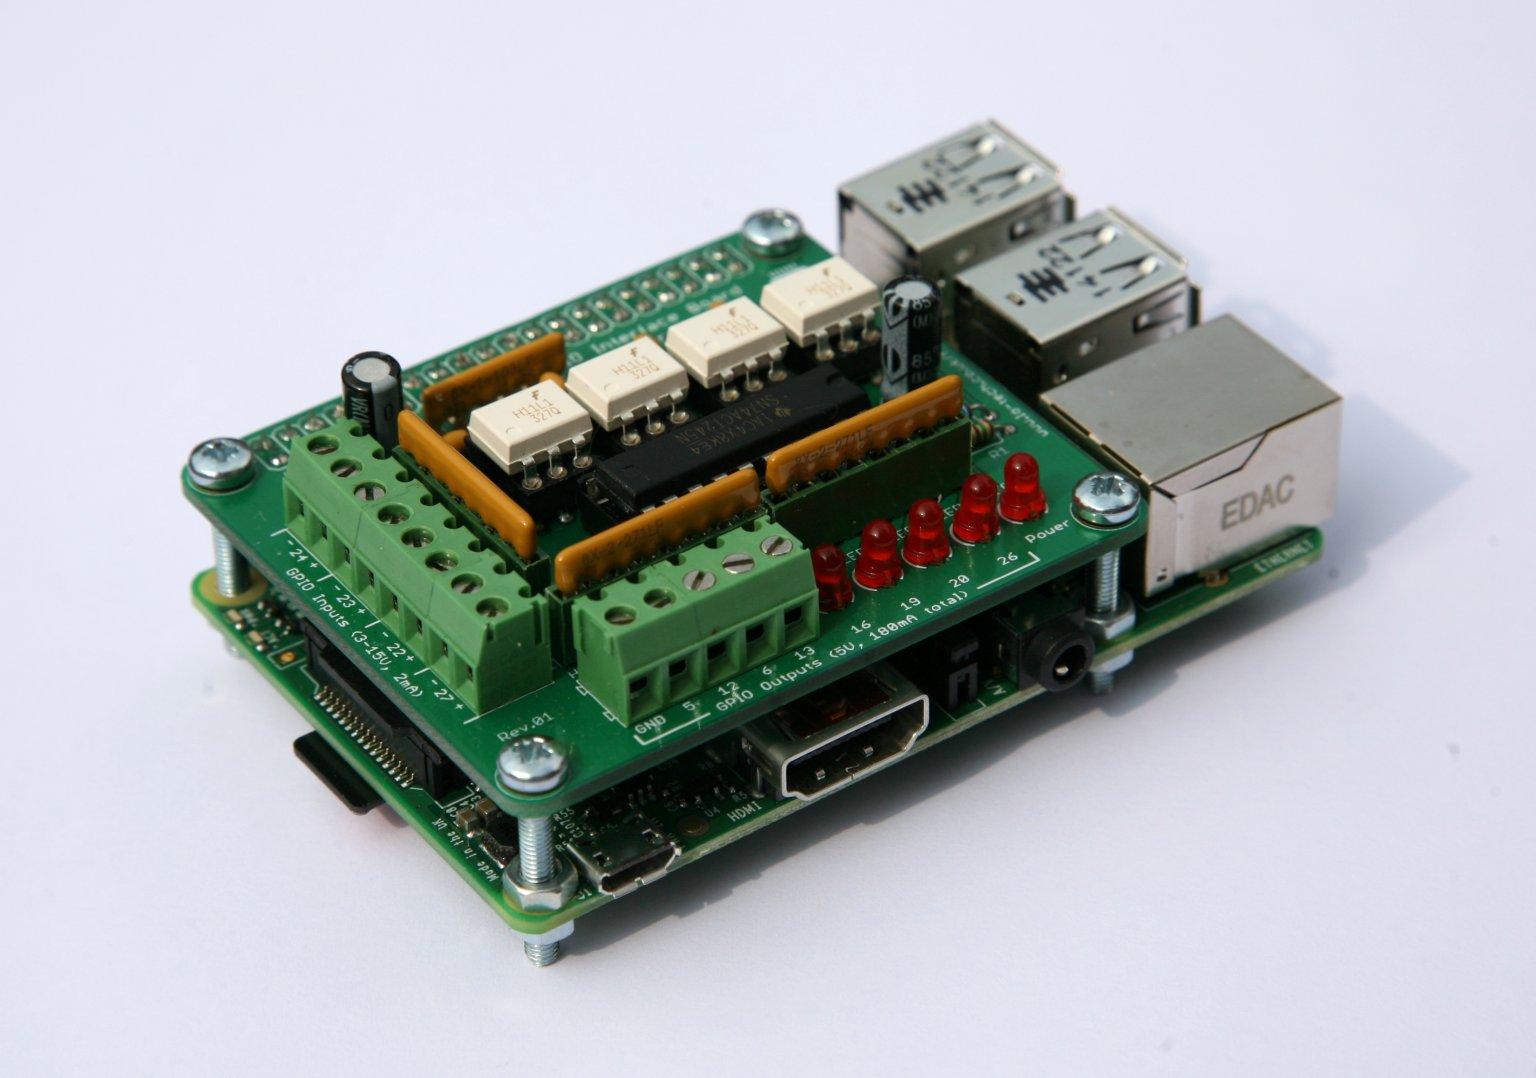 Lo-tech-gpio-interface-board-mounted-on-RaspberryPi-Bplus